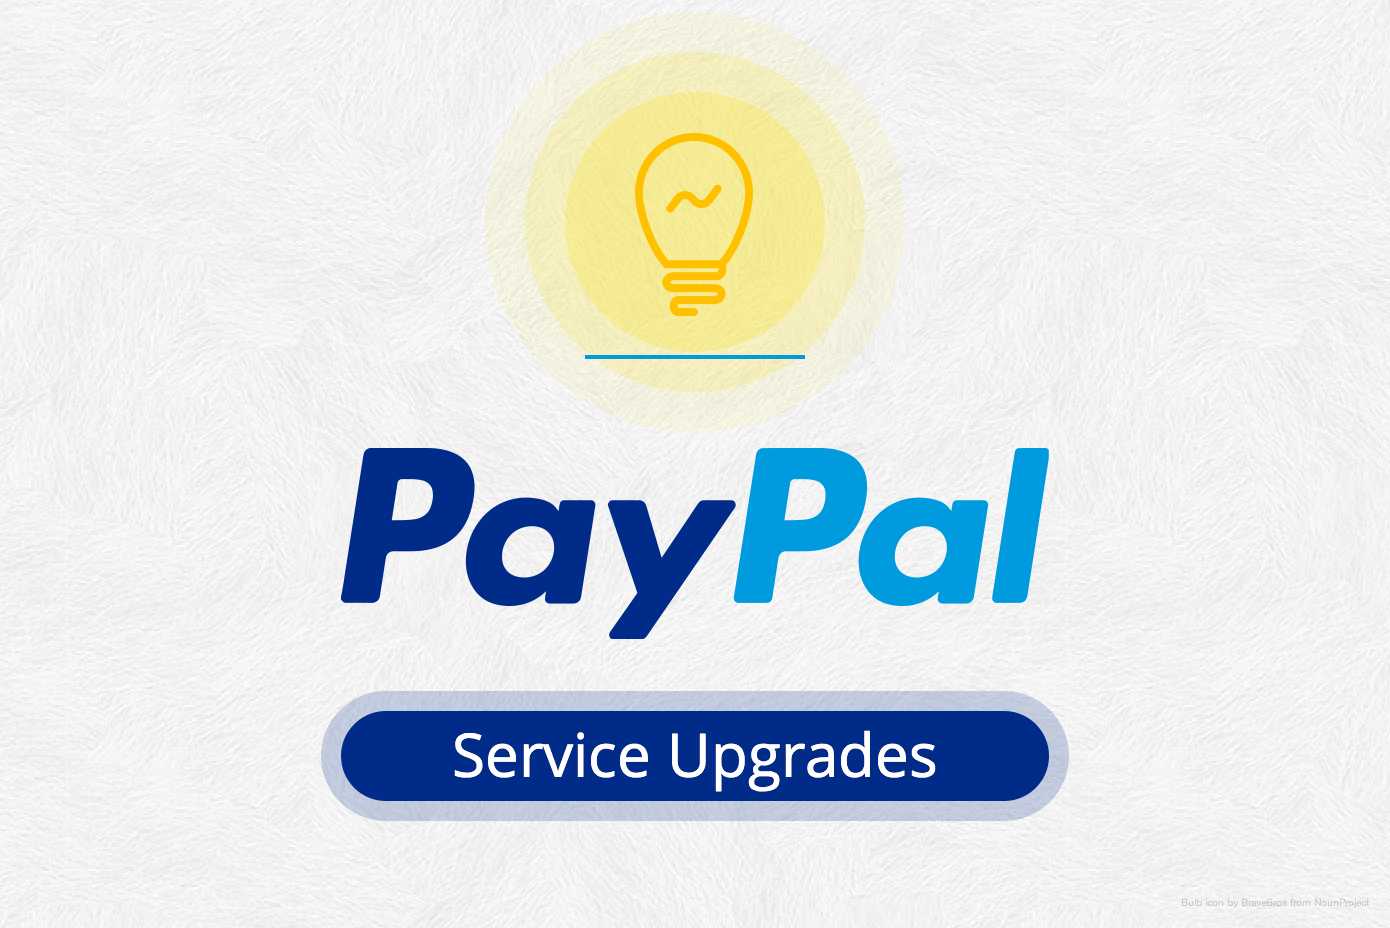 PayPal-Service-Upgrades